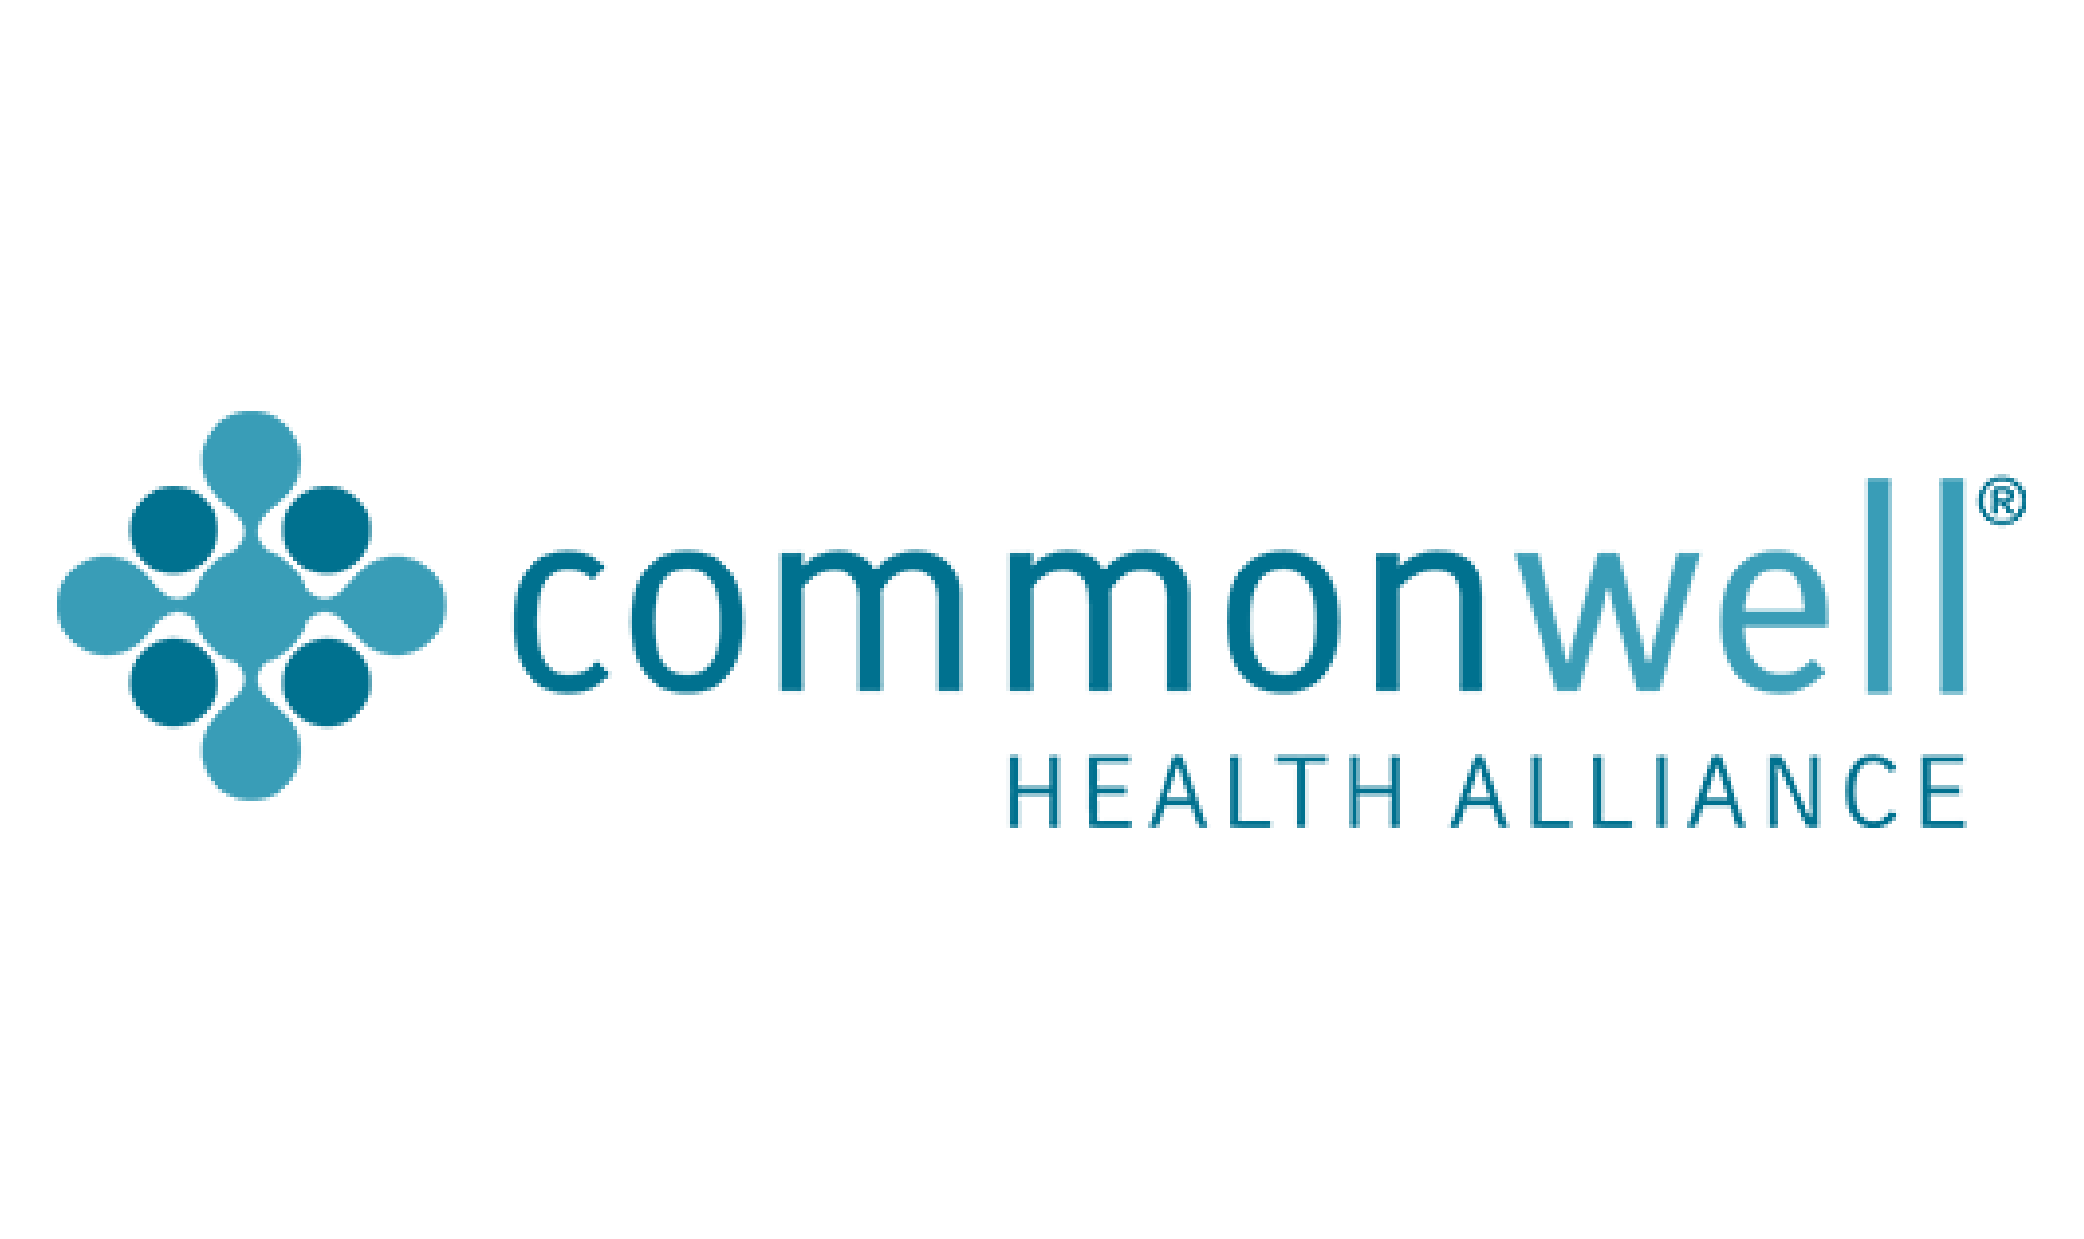 Commonwell-logo-RGB.png